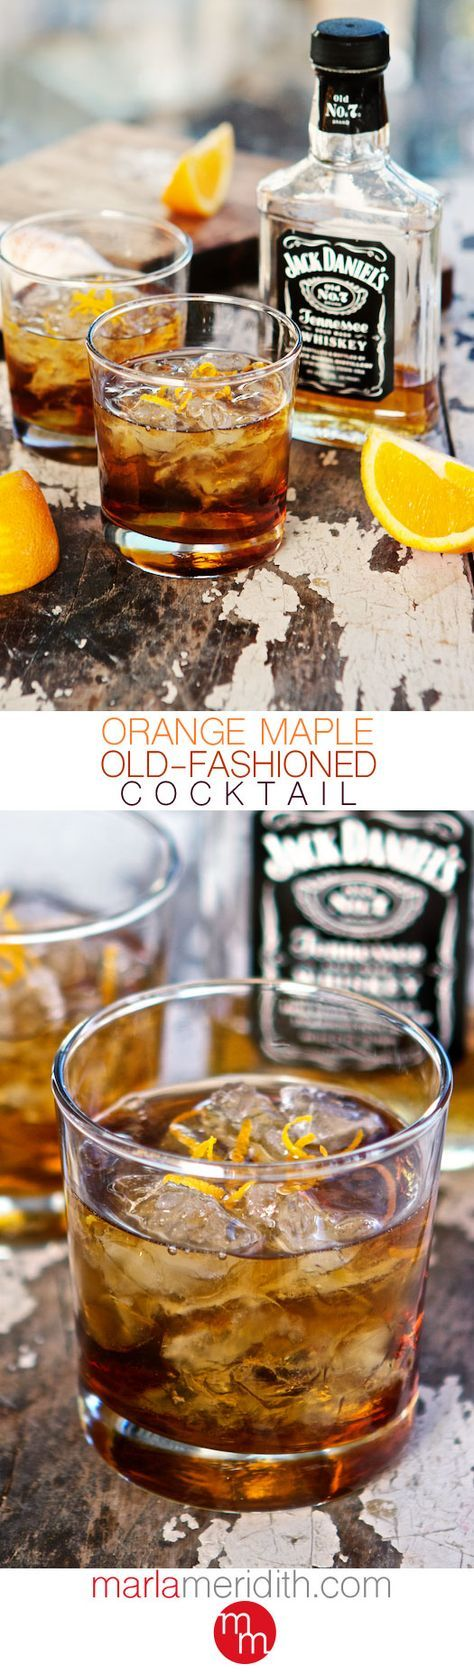 Orange Maple Old-Fashioned Cocktail | A Whiskey Lover's Drink…